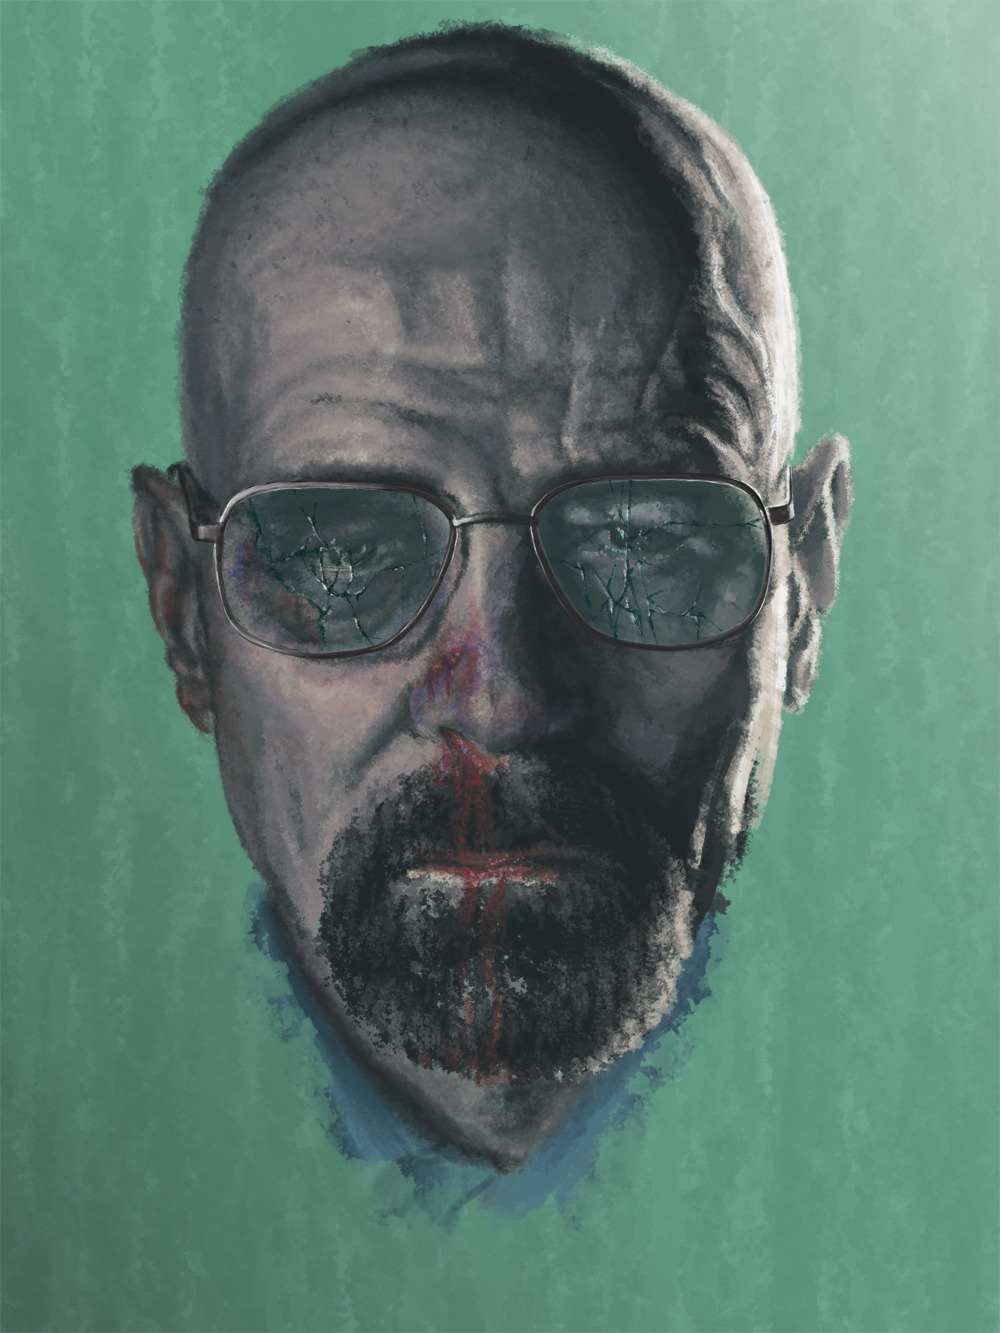 Bryan Cranston as Walter White #BreakingBad #bcotmedia students - remember you can use The Dairy and the Art Department to create your posters and viral campaign art-work.